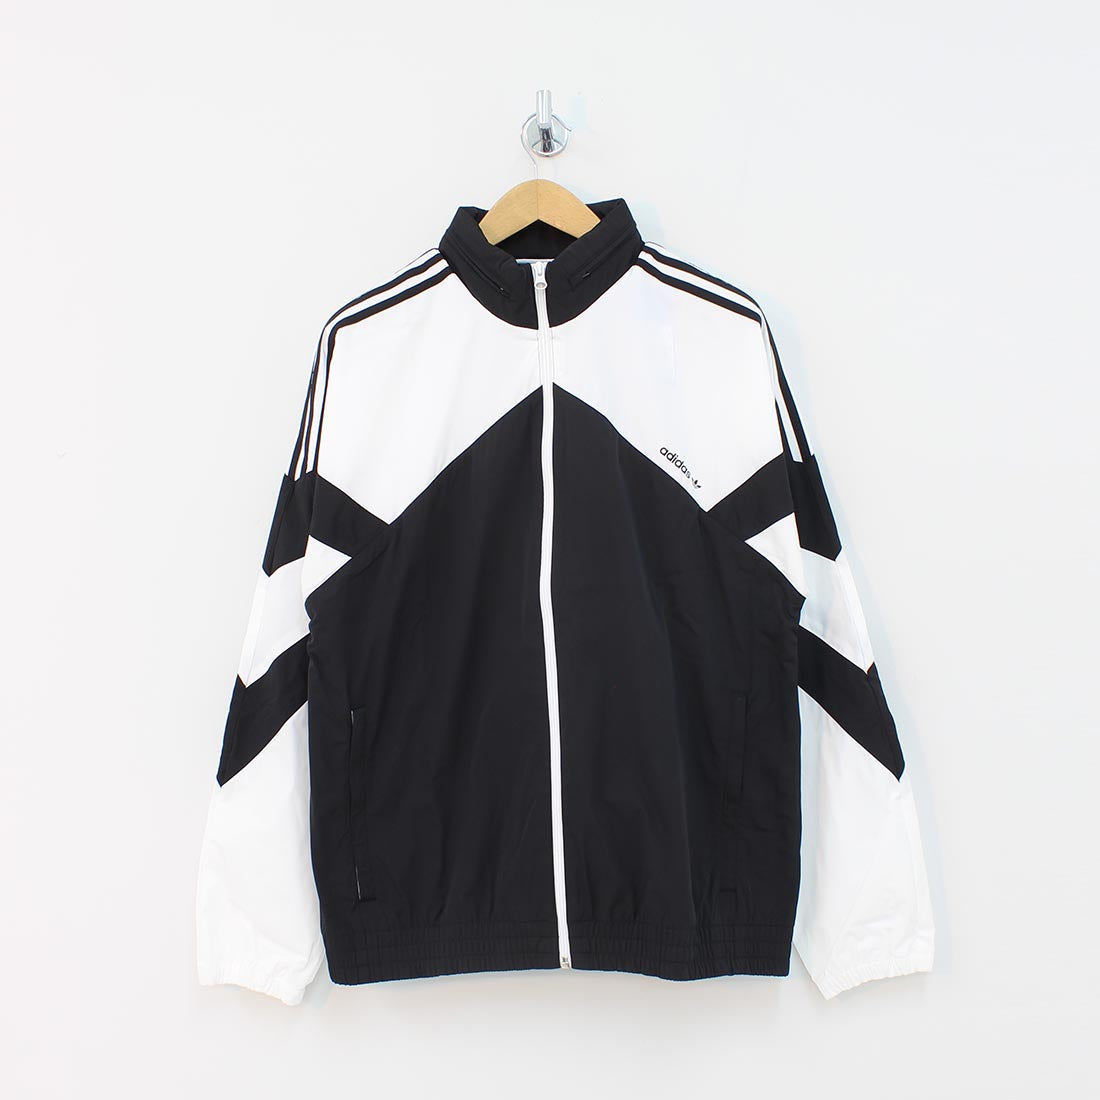 Adidas Originals Palmeston Wind Breaker Black